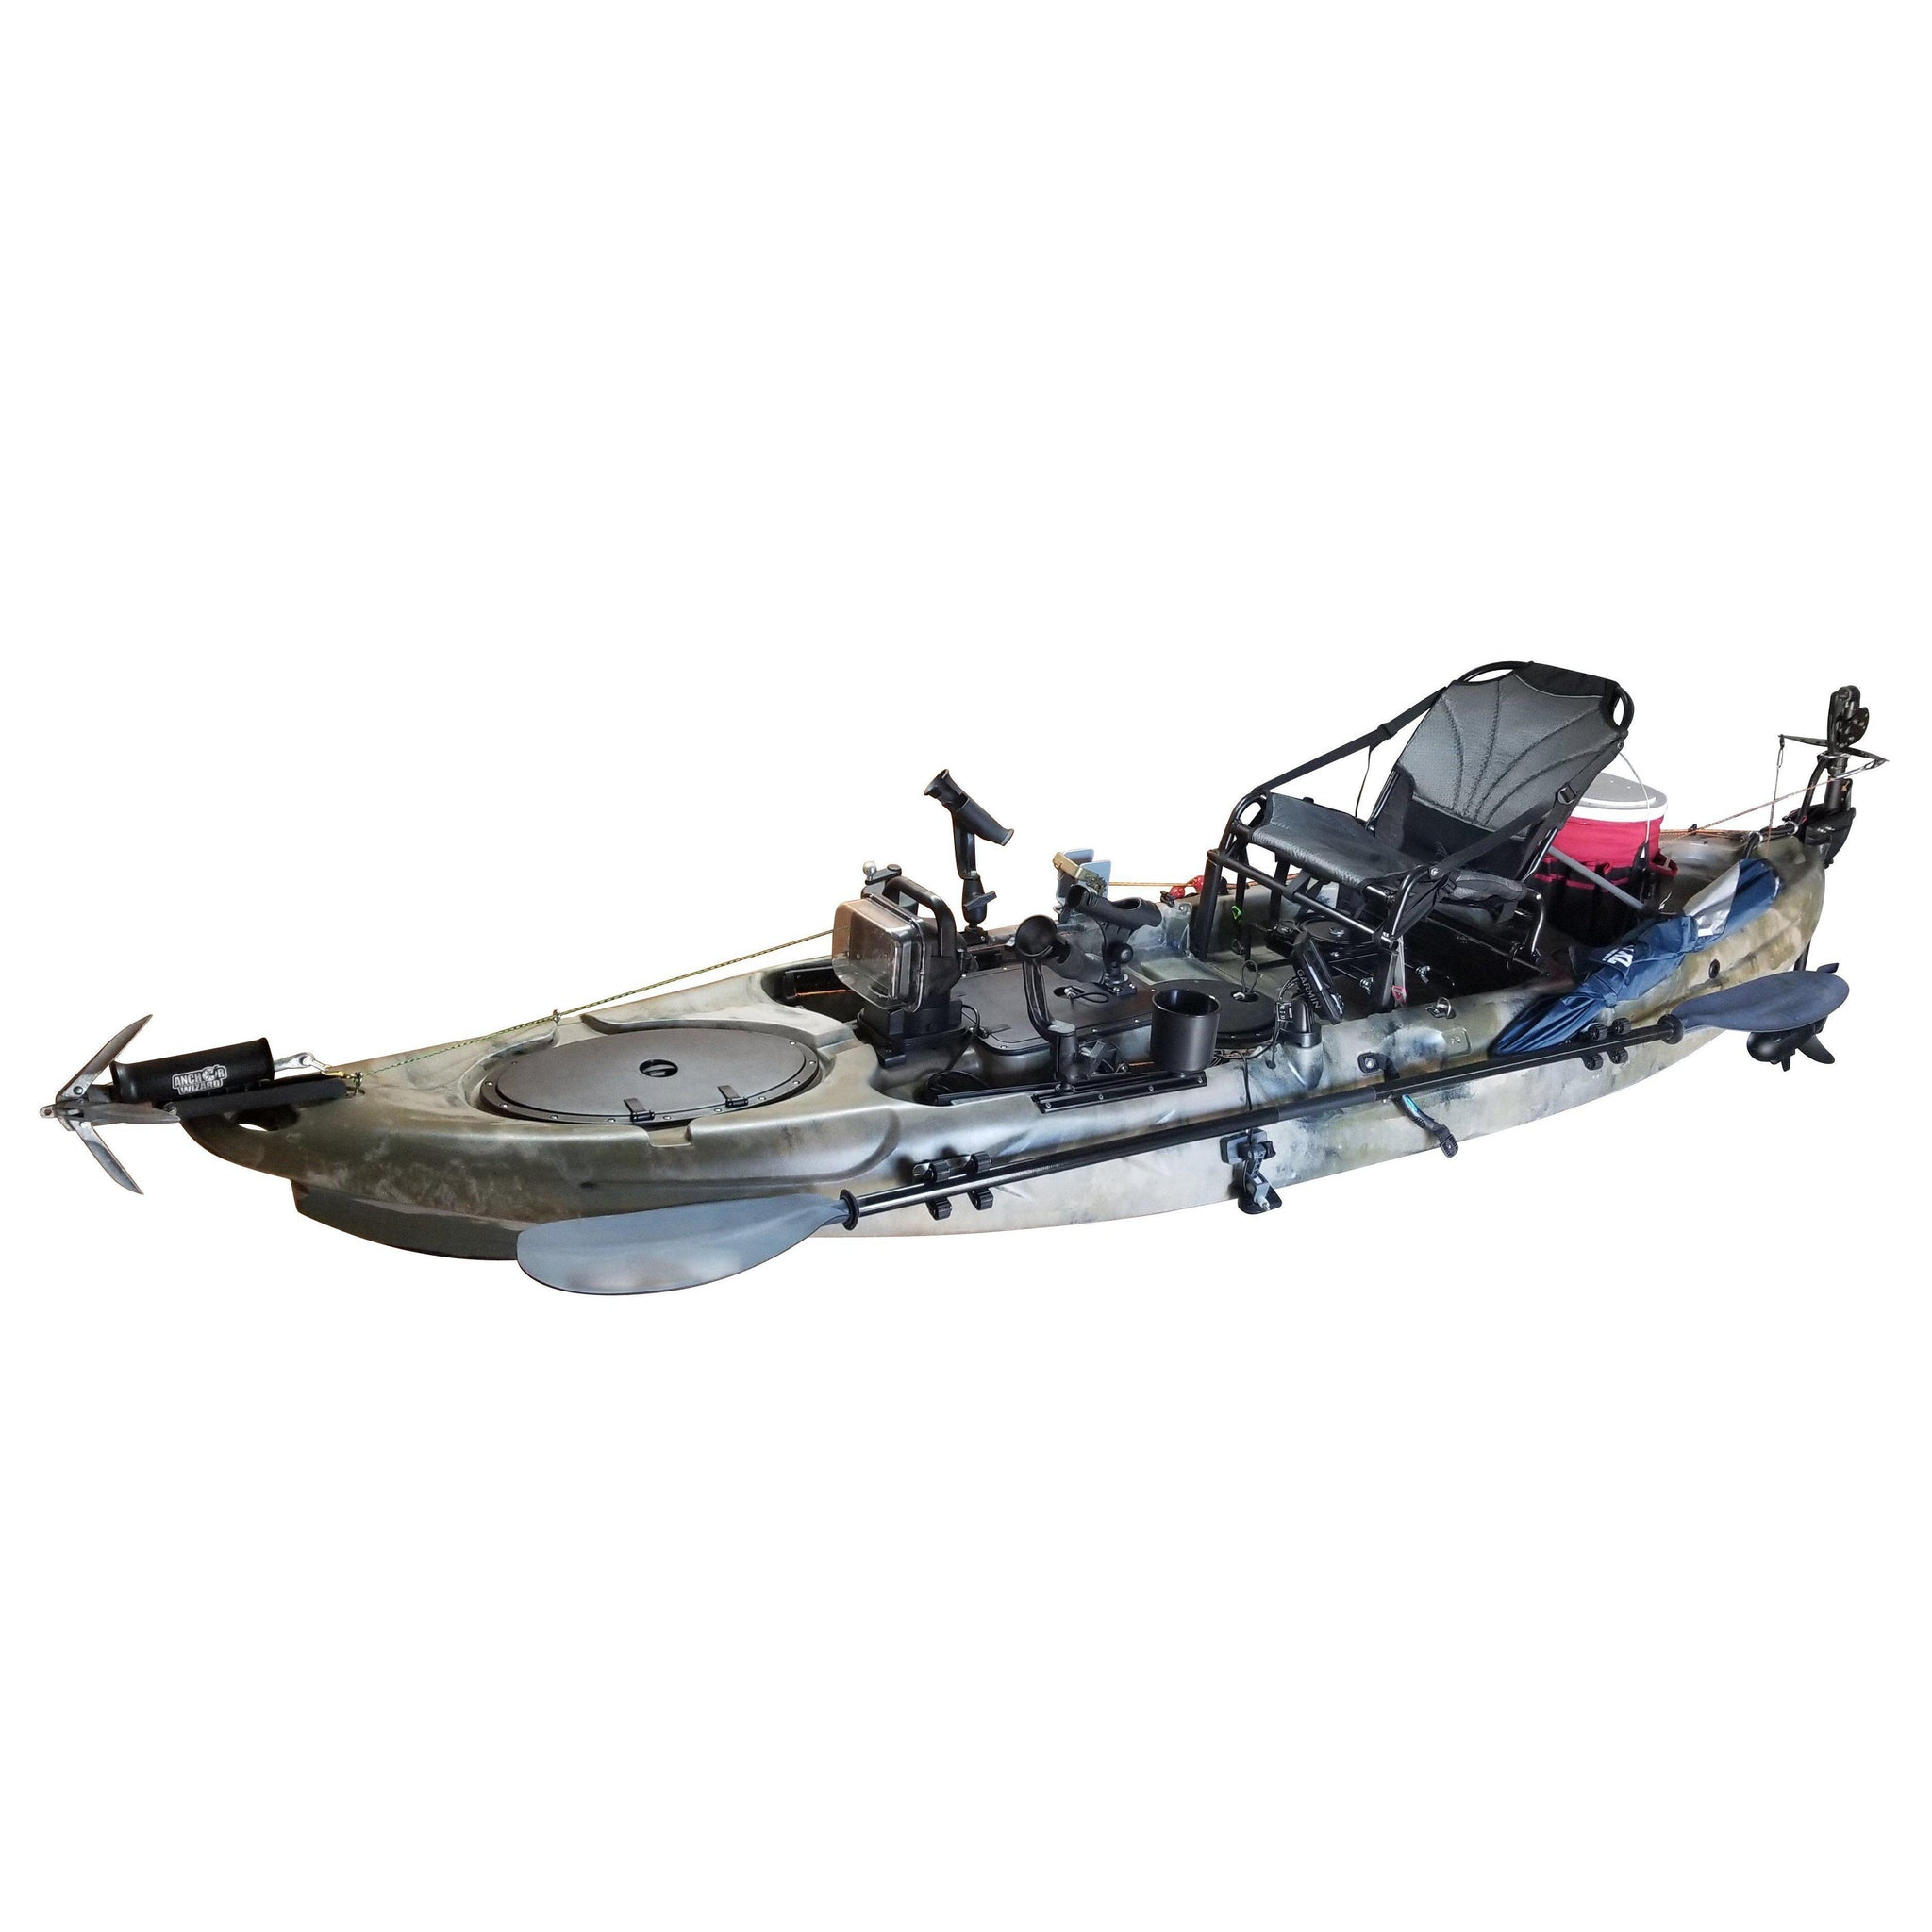 Bkc Uh Ra220 Sit On Top Fishing Kayak Kayak Shops